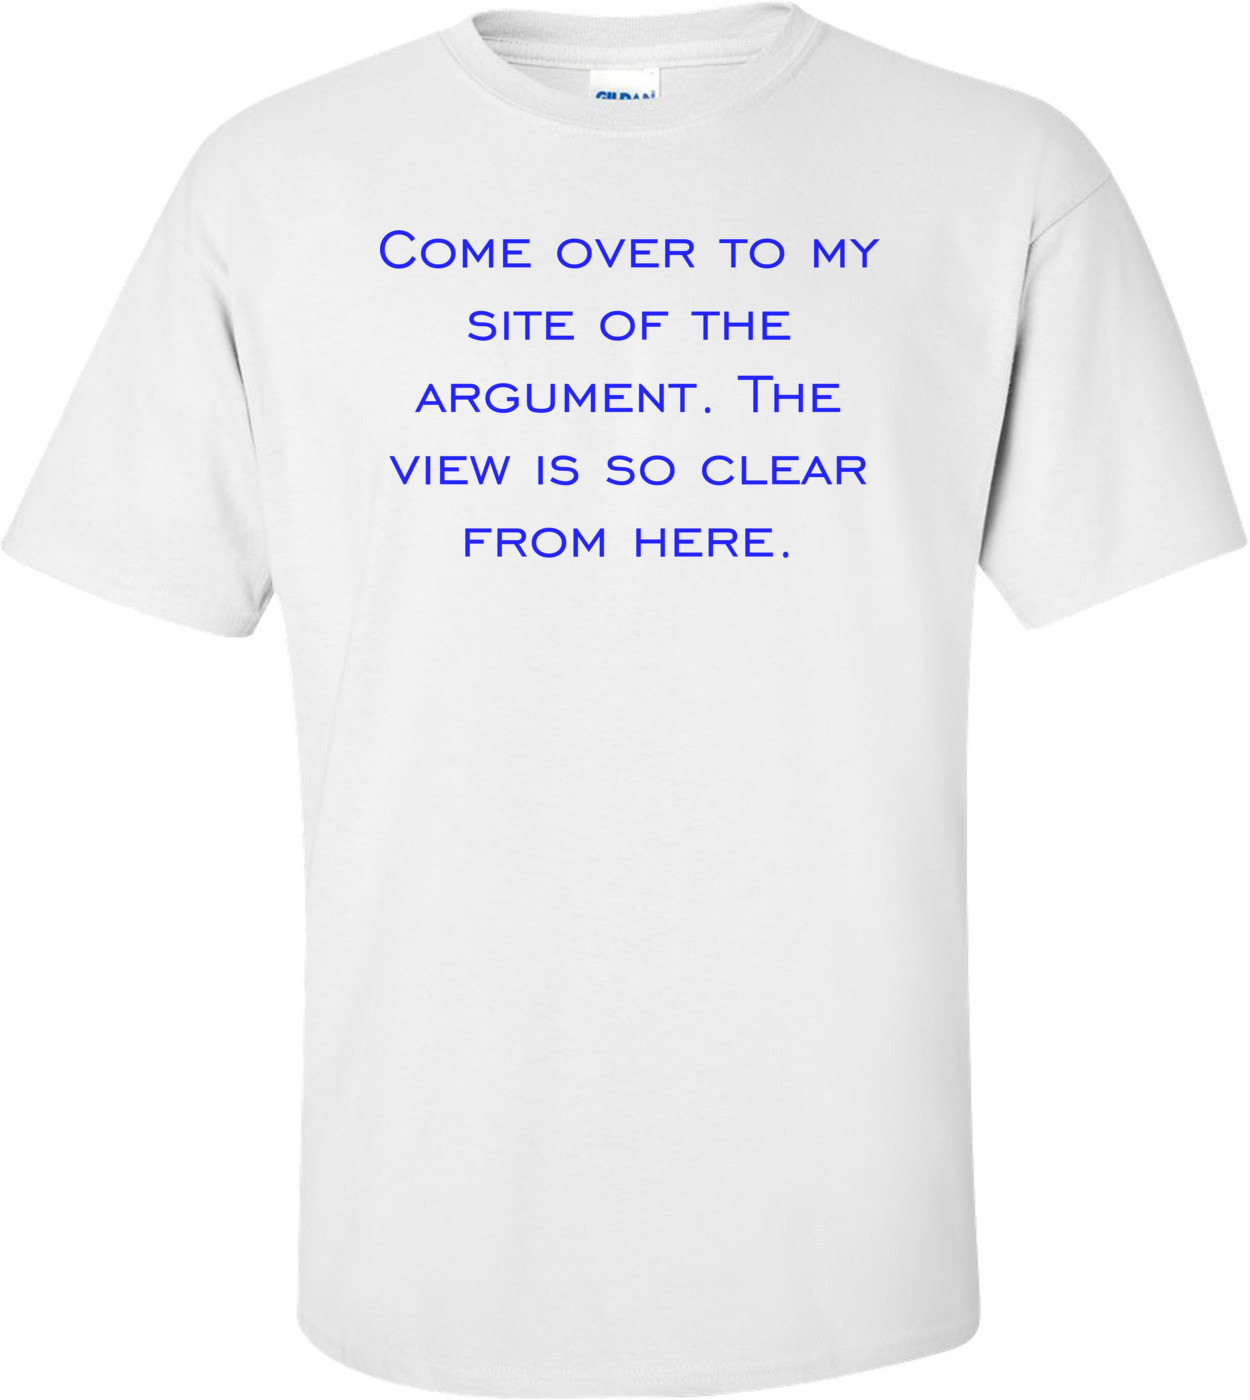 Come over to my site of the argument. The view is so clear from here. Shirt